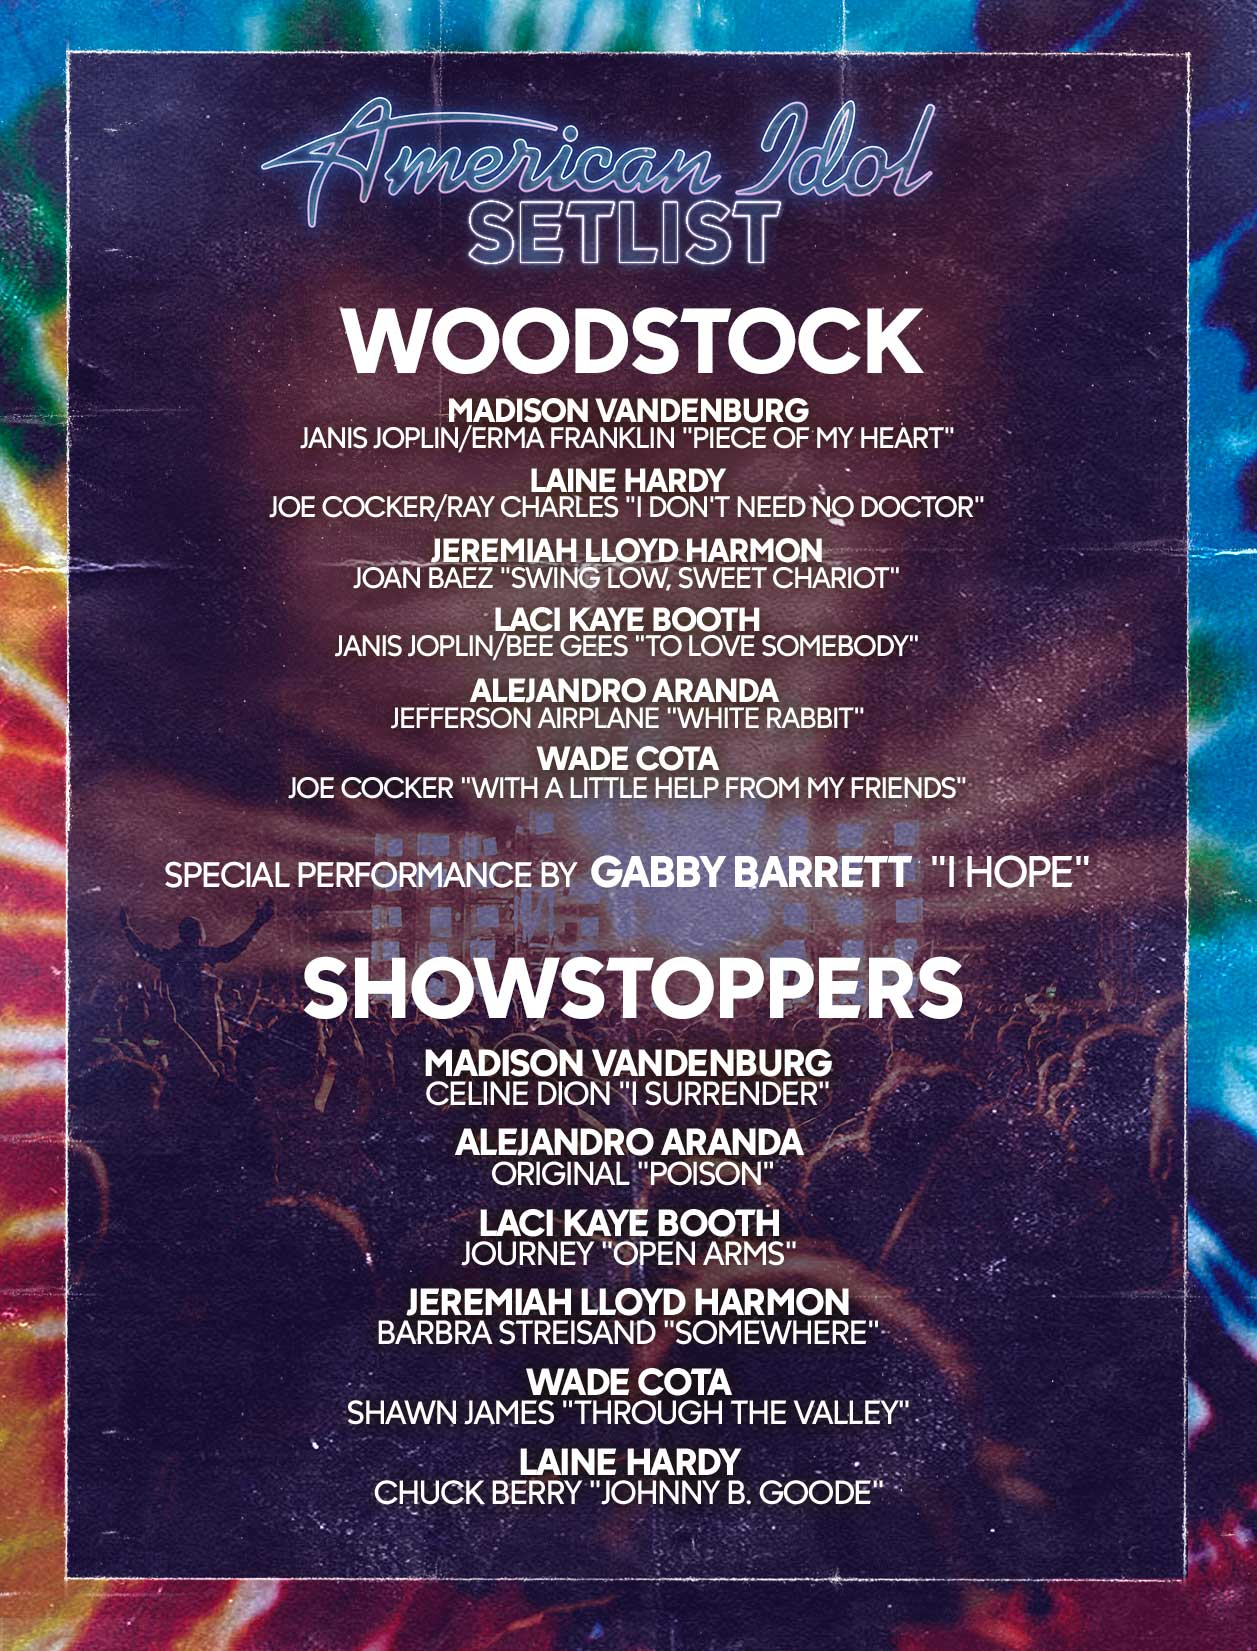 216_WoodStock_ShowStoppers_V10.jpg